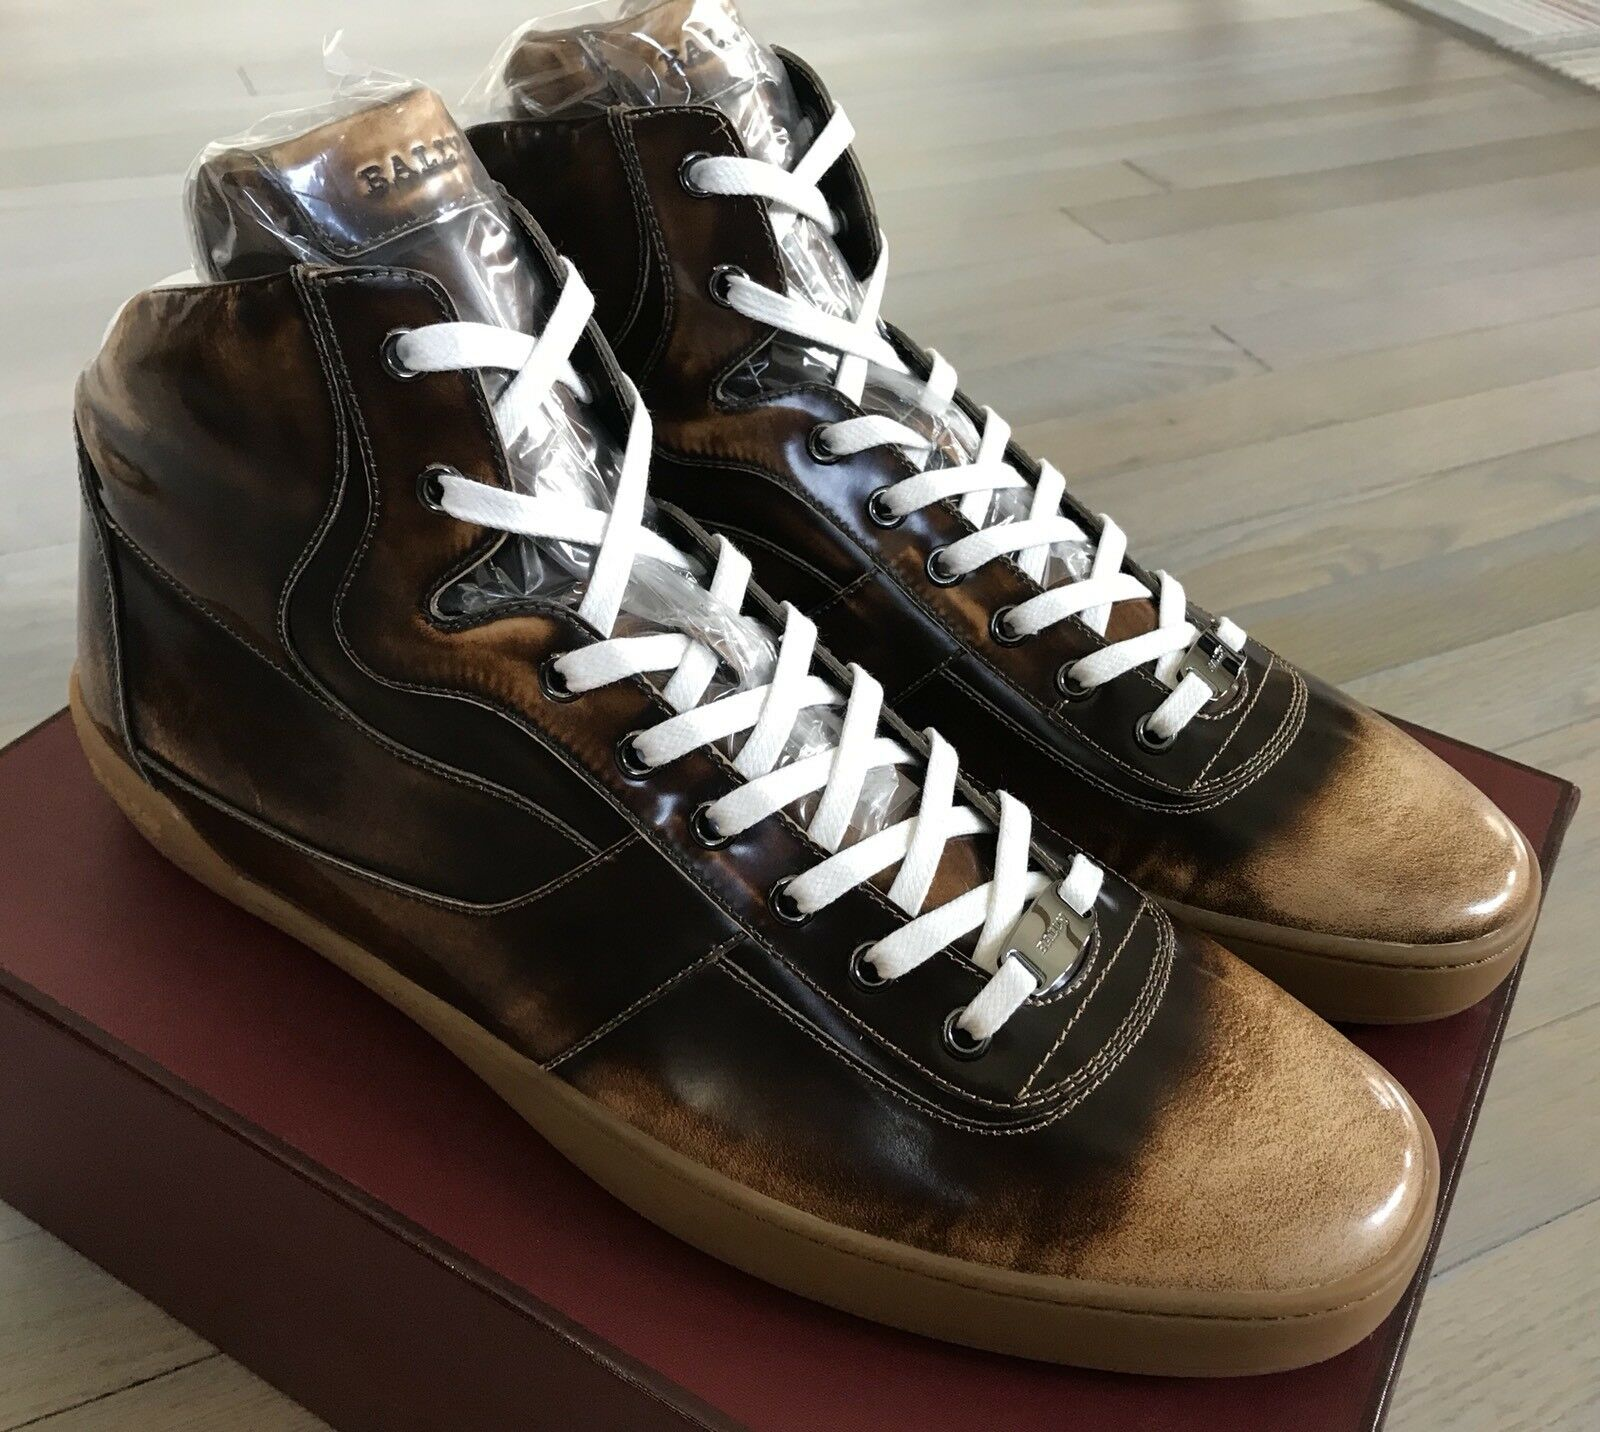 700$ Bally Eroy 582 Brown Brushed High Tops Sneakers size US 13